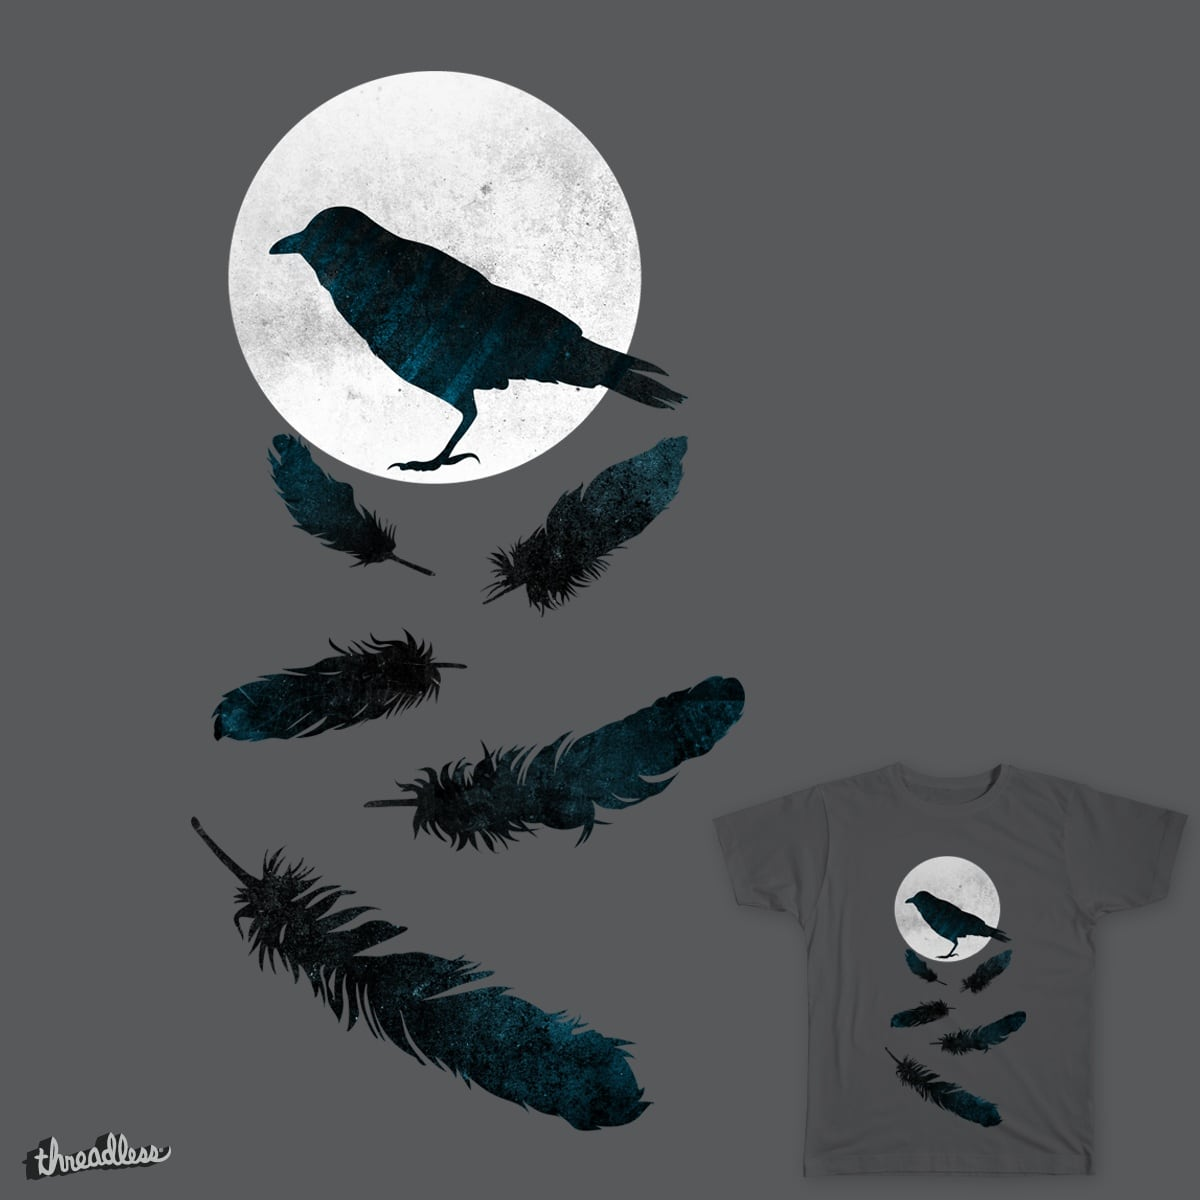 nightly crow by ViVaiolet on Threadless